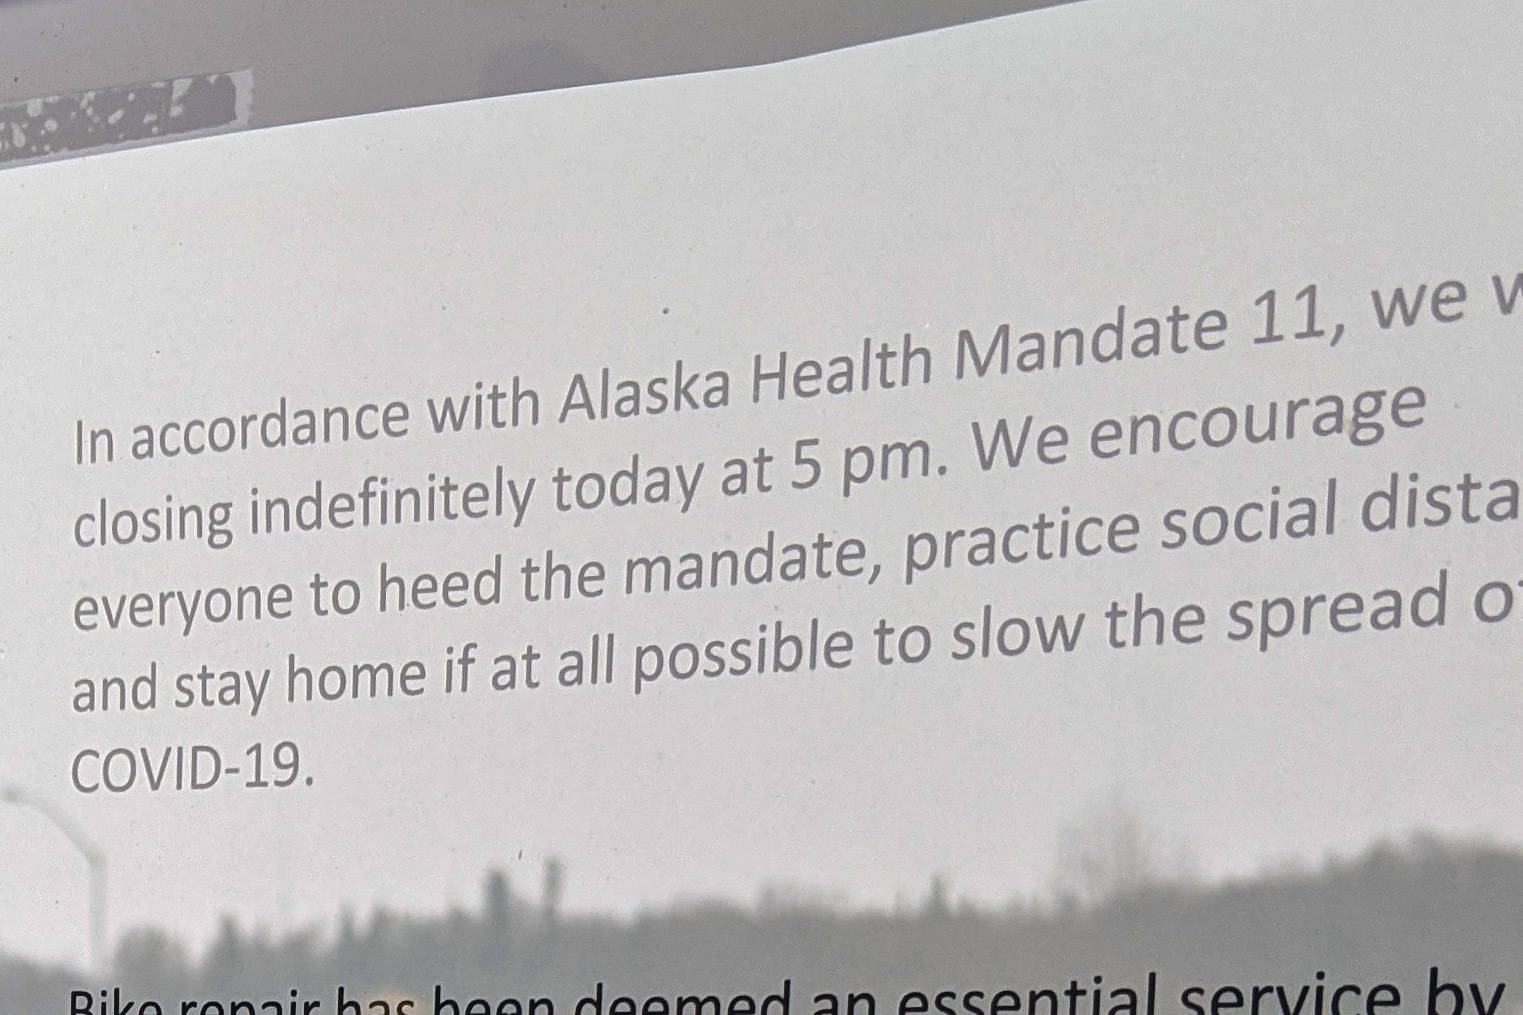 A sign notifying the public of closure of nonessential businesses due to public health mandate 11 can be seen in Soldotna, Alaska, on April 1, 2020. Gov. Mike Dunleavy issued guidelines allowing nonessential businesses to operate in a limited capacity on Wednesday, April 22, 2020. (Photo by Erin Thompson/Peninsula Clarion)